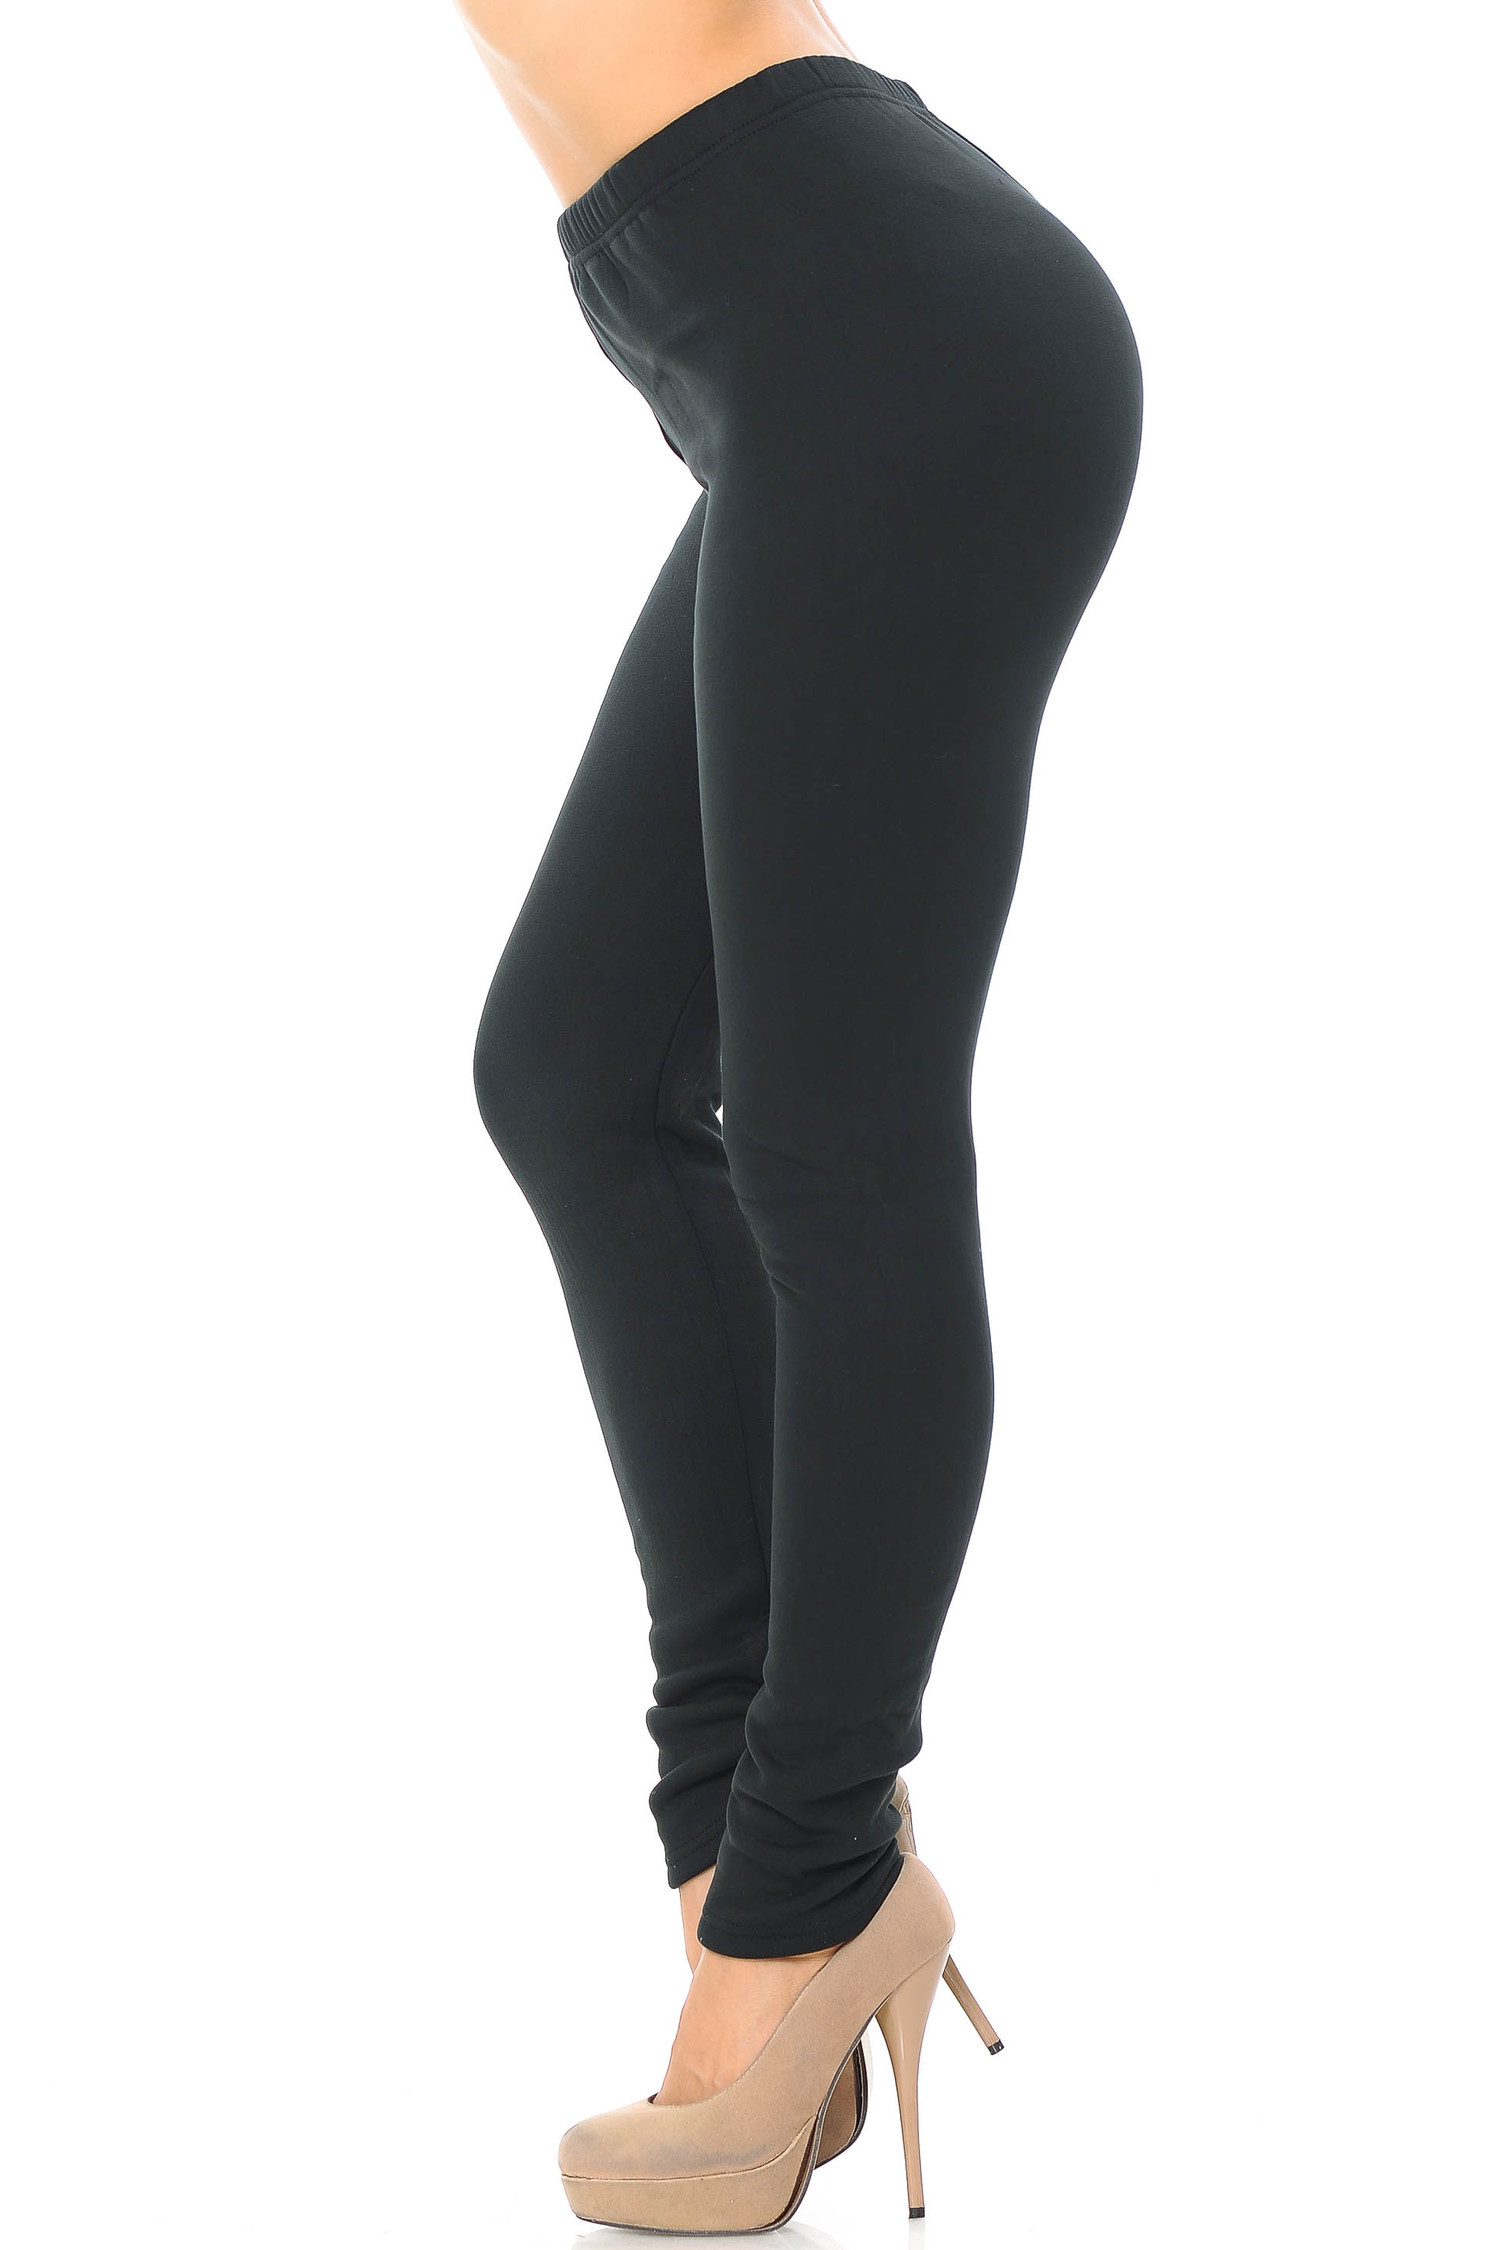 Left side of Luxury Creamy Soft Fleece Lined Extra Plus Size Leggings - 3X-5X - USA Fashion™